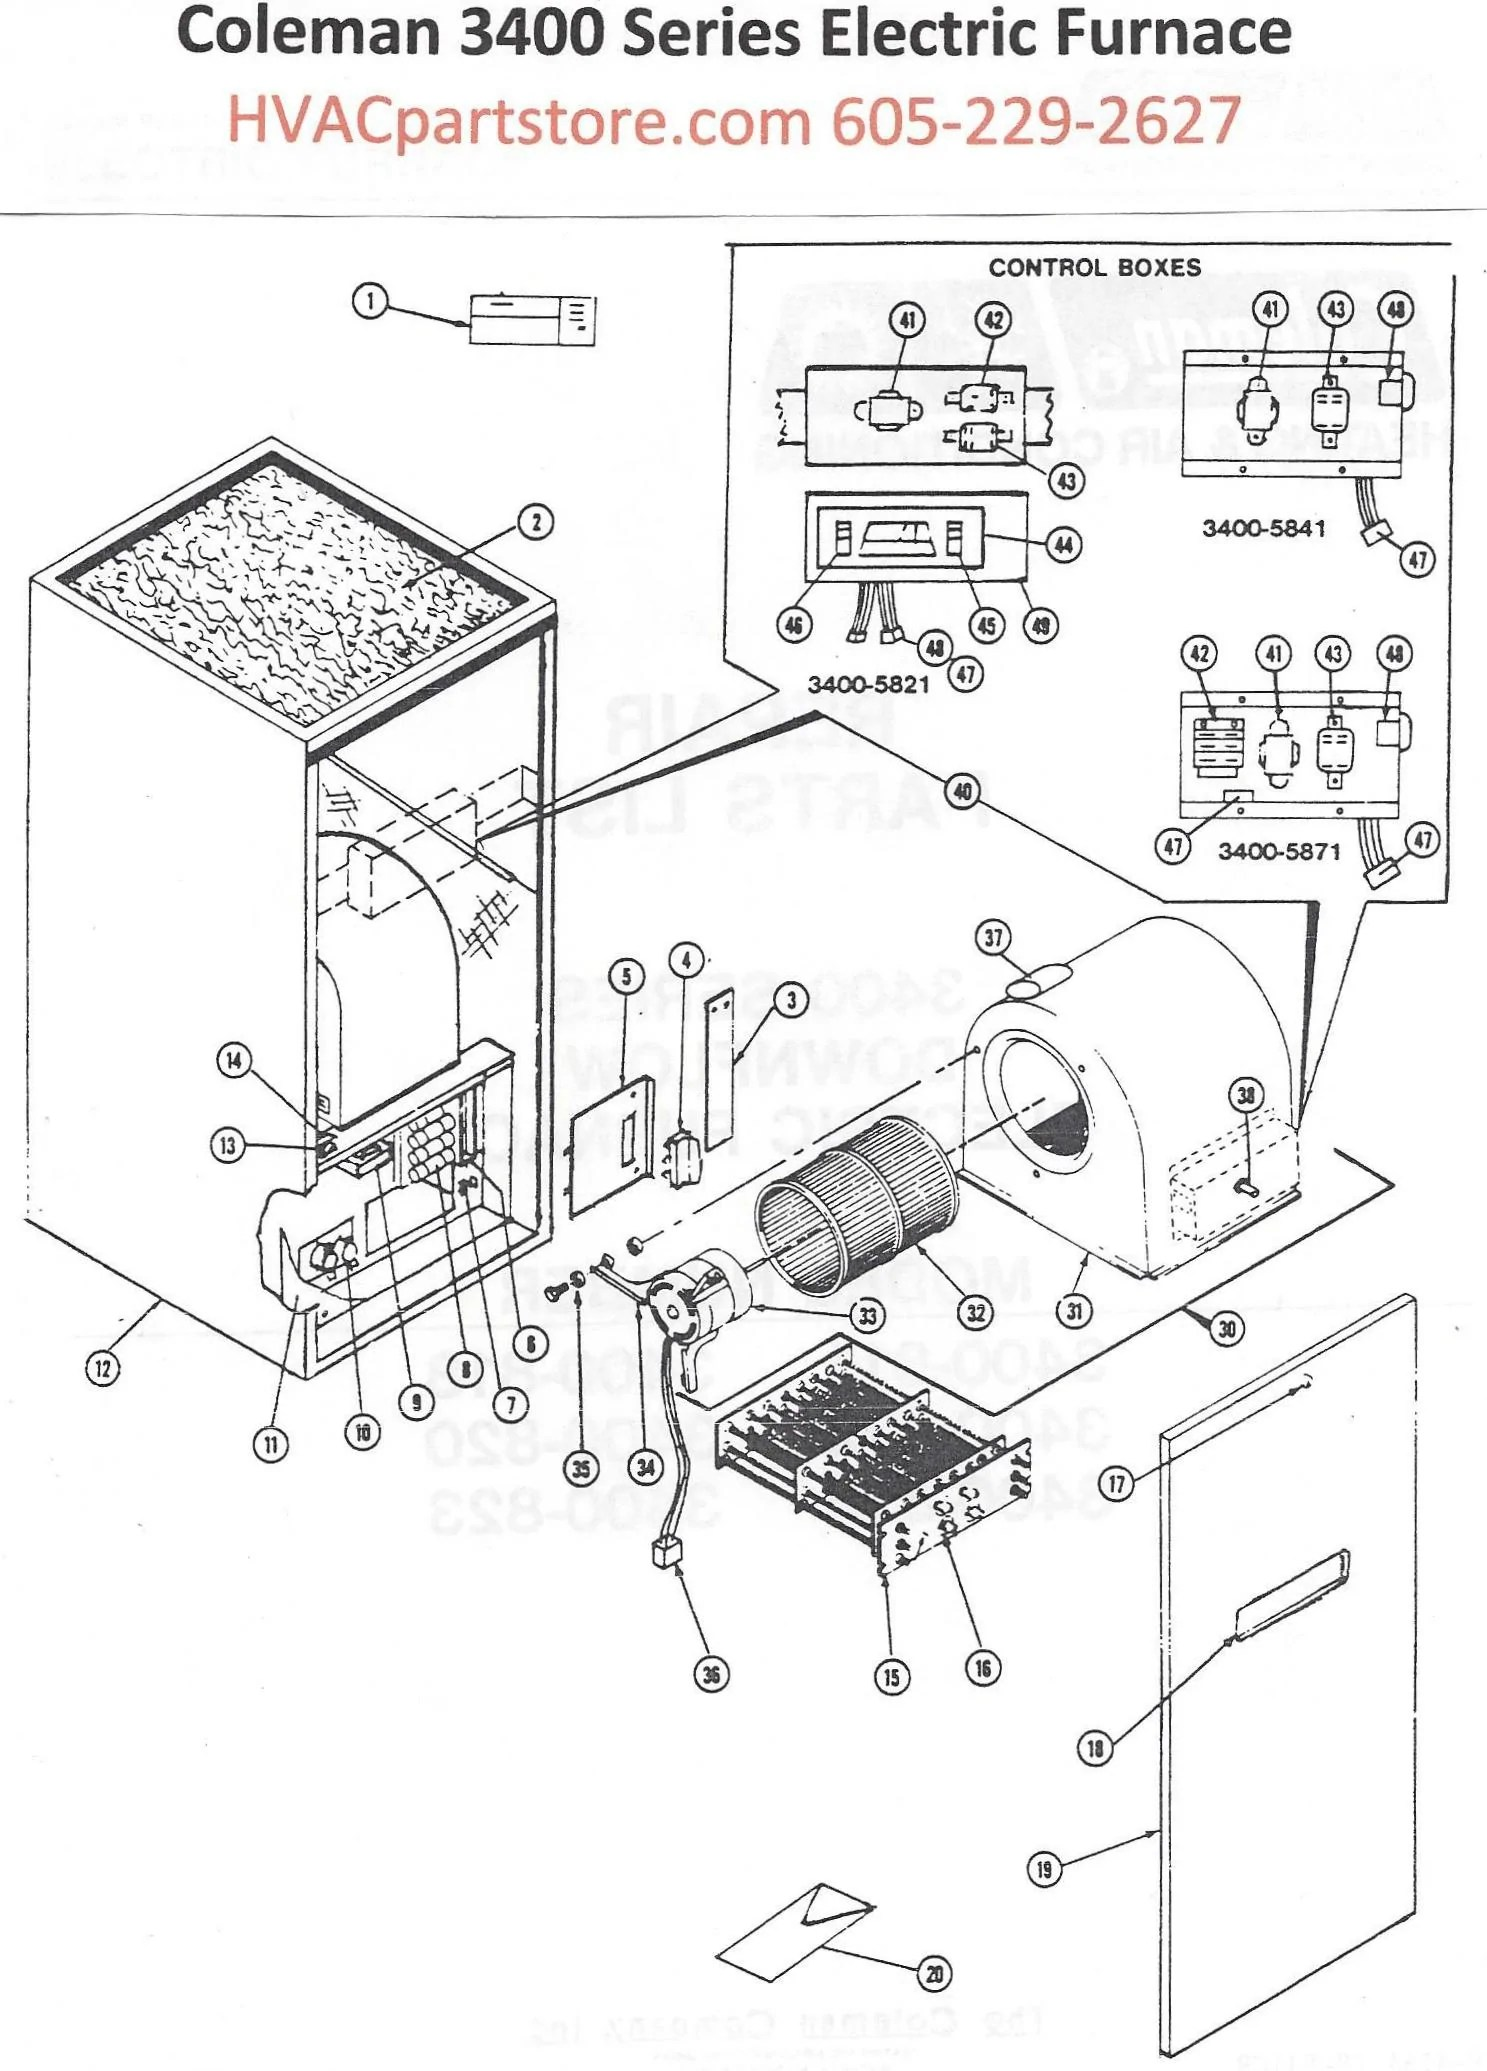 small resolution of coleman ac heater wiring diagram 3400 wiring diagram third level3400 815 coleman electric furnace parts hvacpartstore